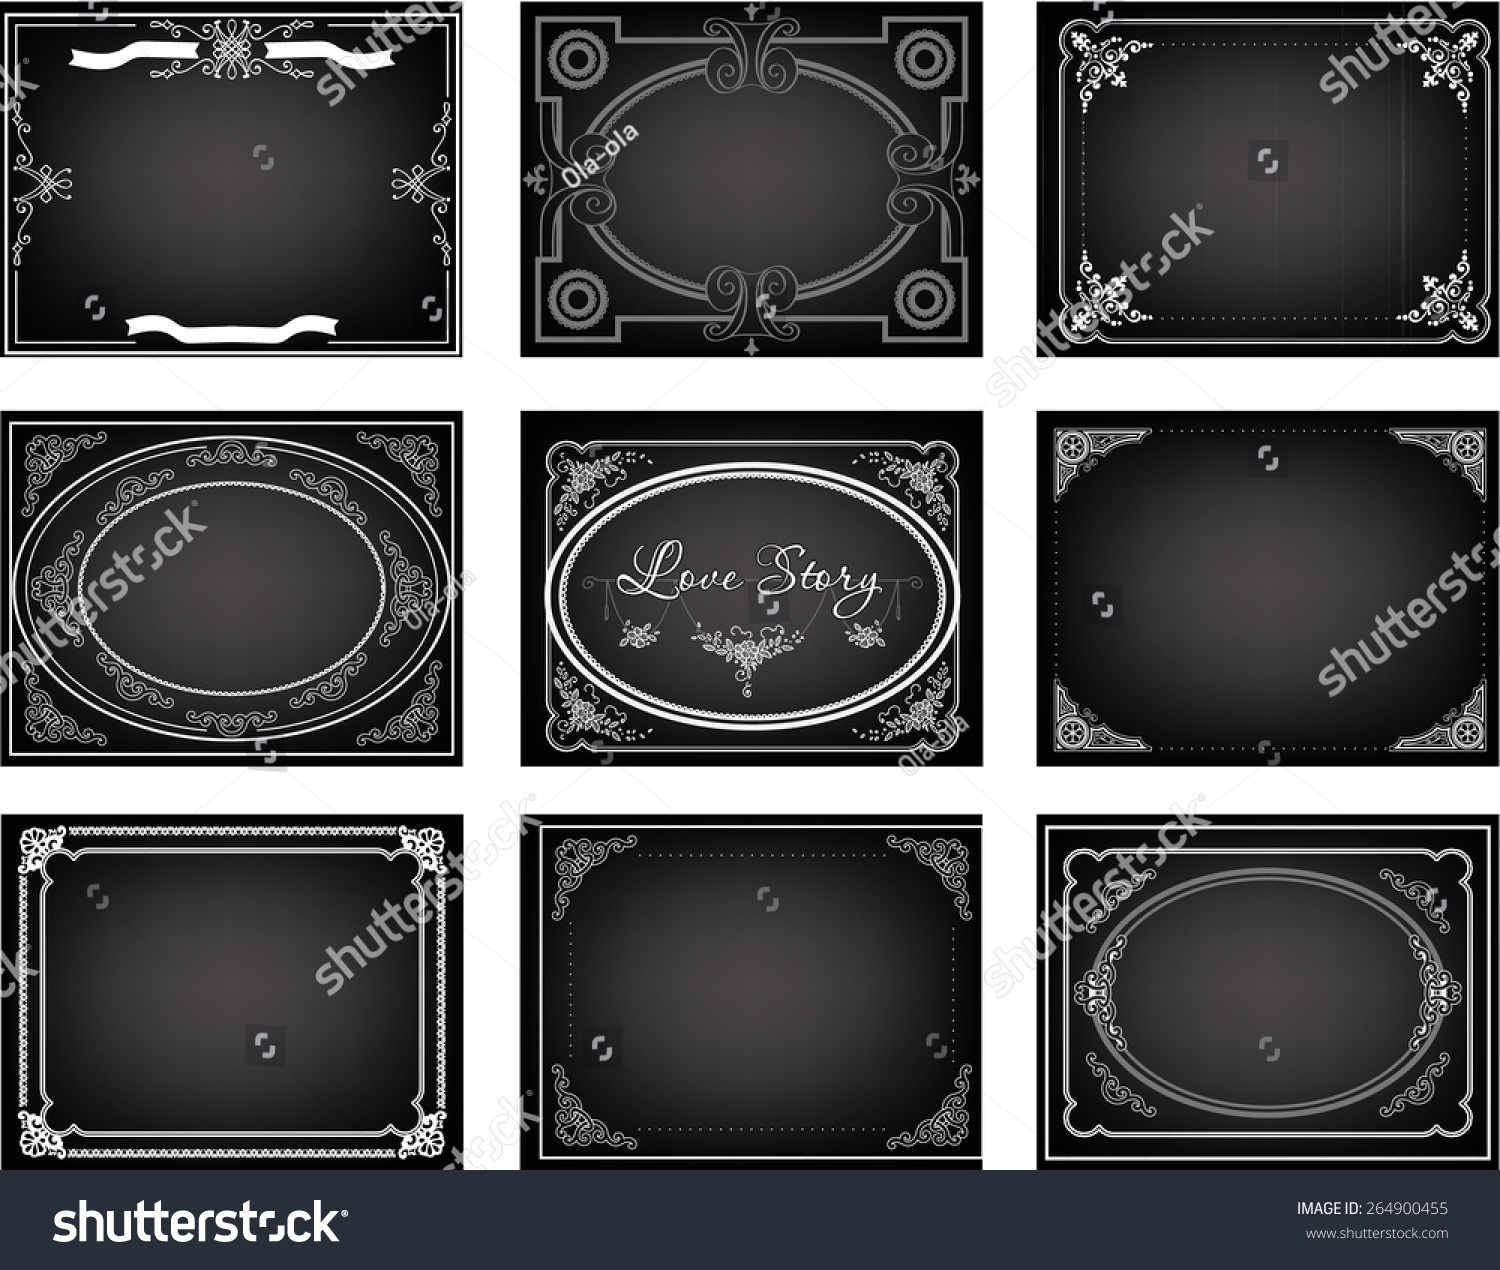 Set Old Silent Movie Title Frames Stock Vector 264900455 - Shutterstock